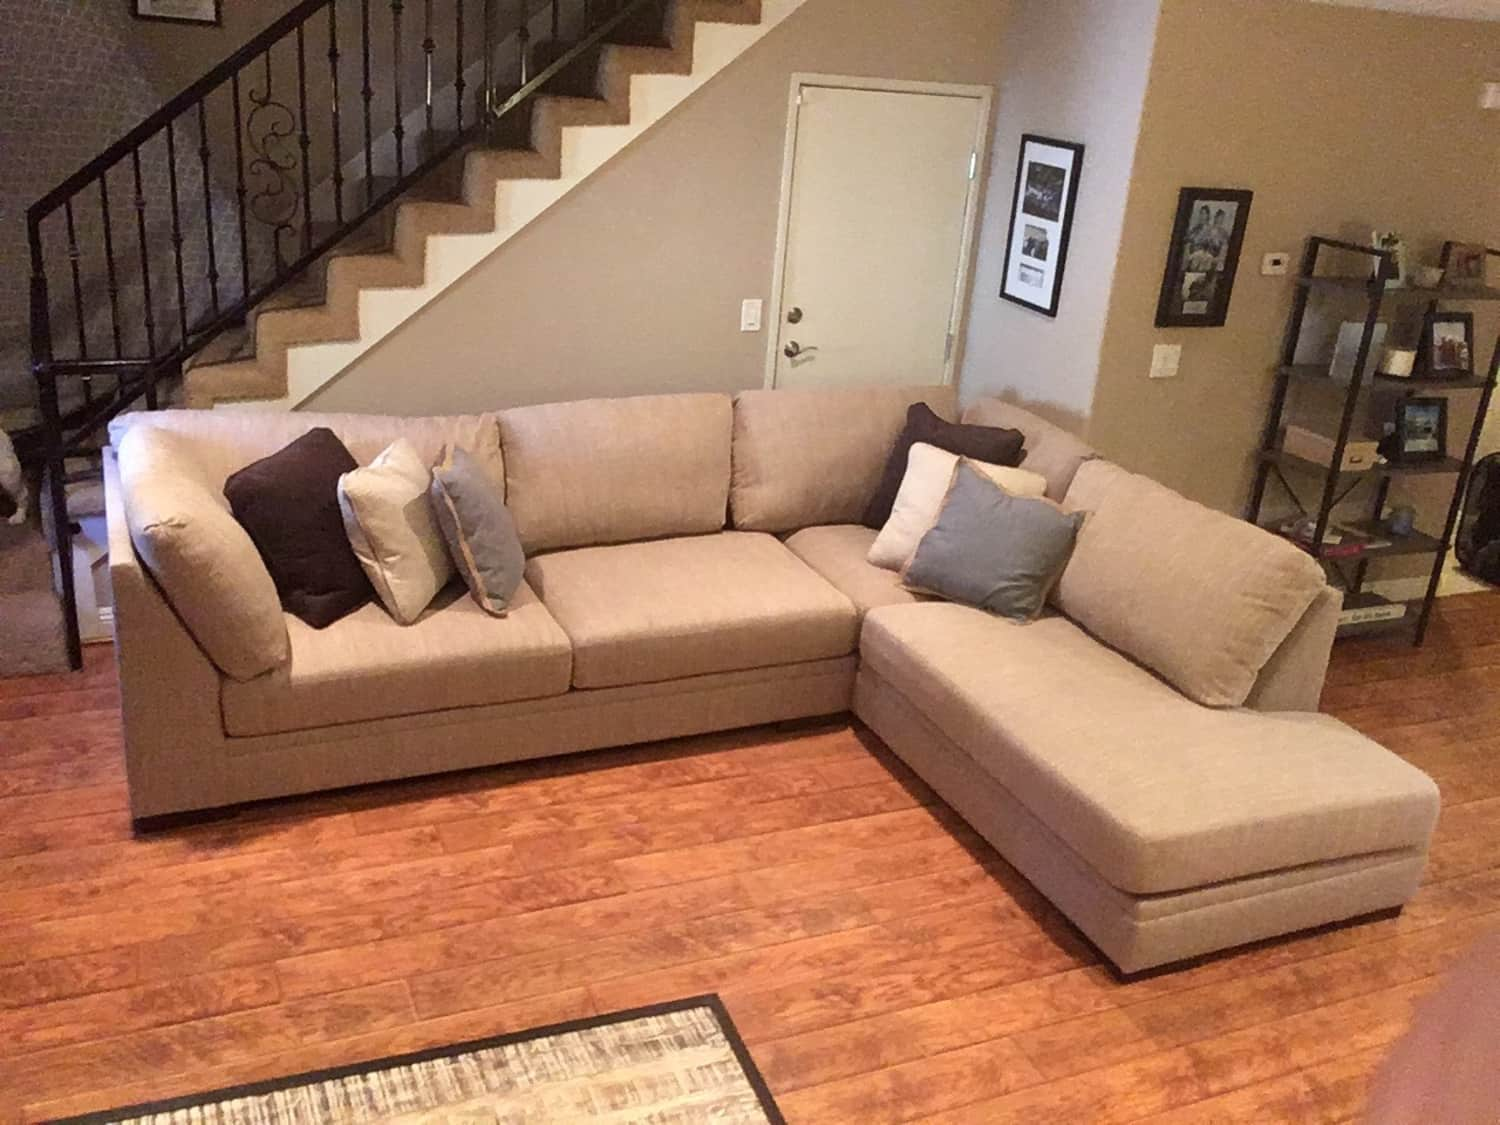 Superb New 2 Piece Sectional Couch Malakoff Apartment Ibusinesslaw Wood Chair Design Ideas Ibusinesslaworg